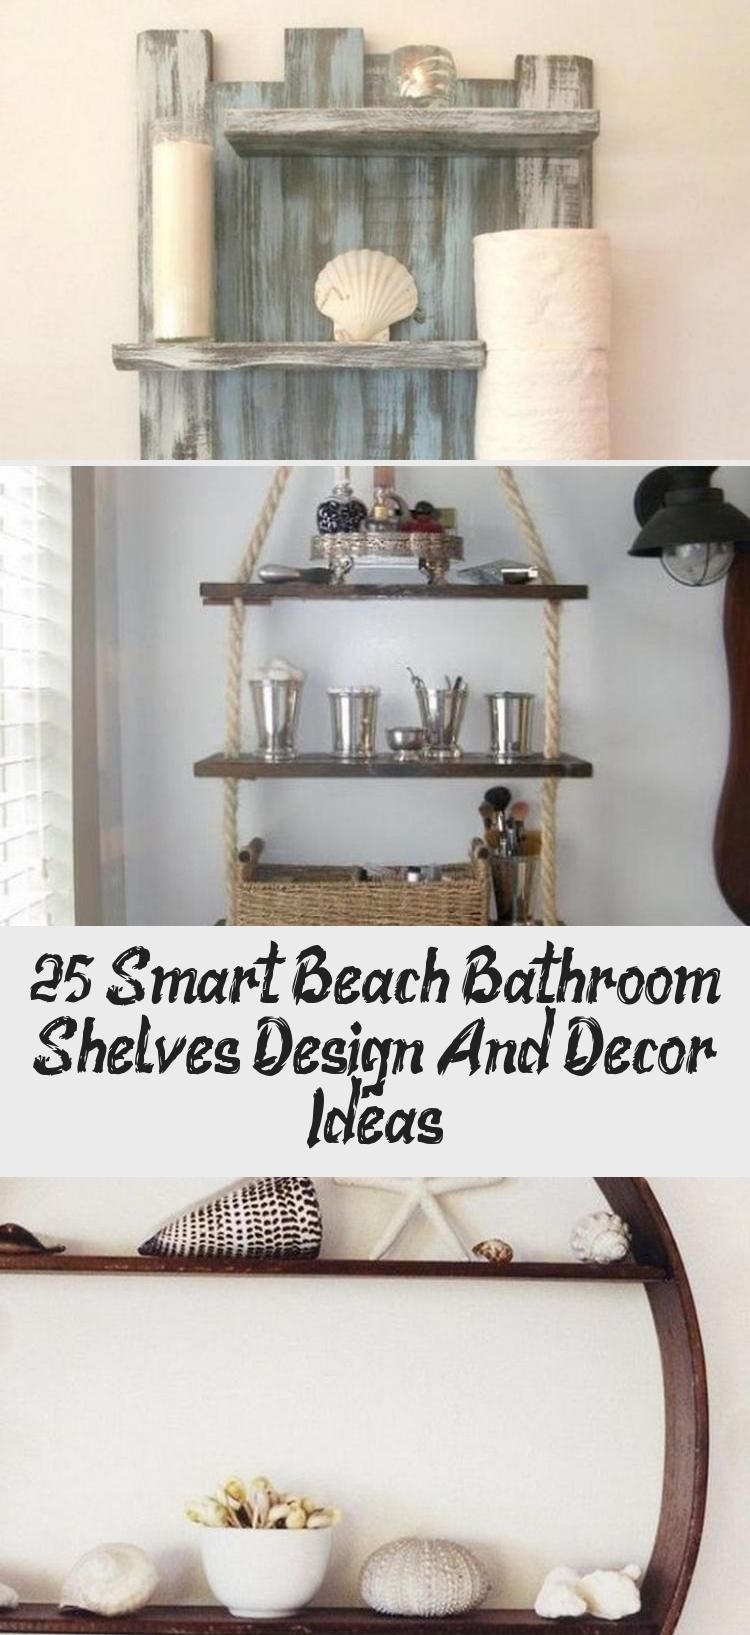 25+ Smart Beach Bathroom Shelves Design And Decor Ideas – Decor Bathroom